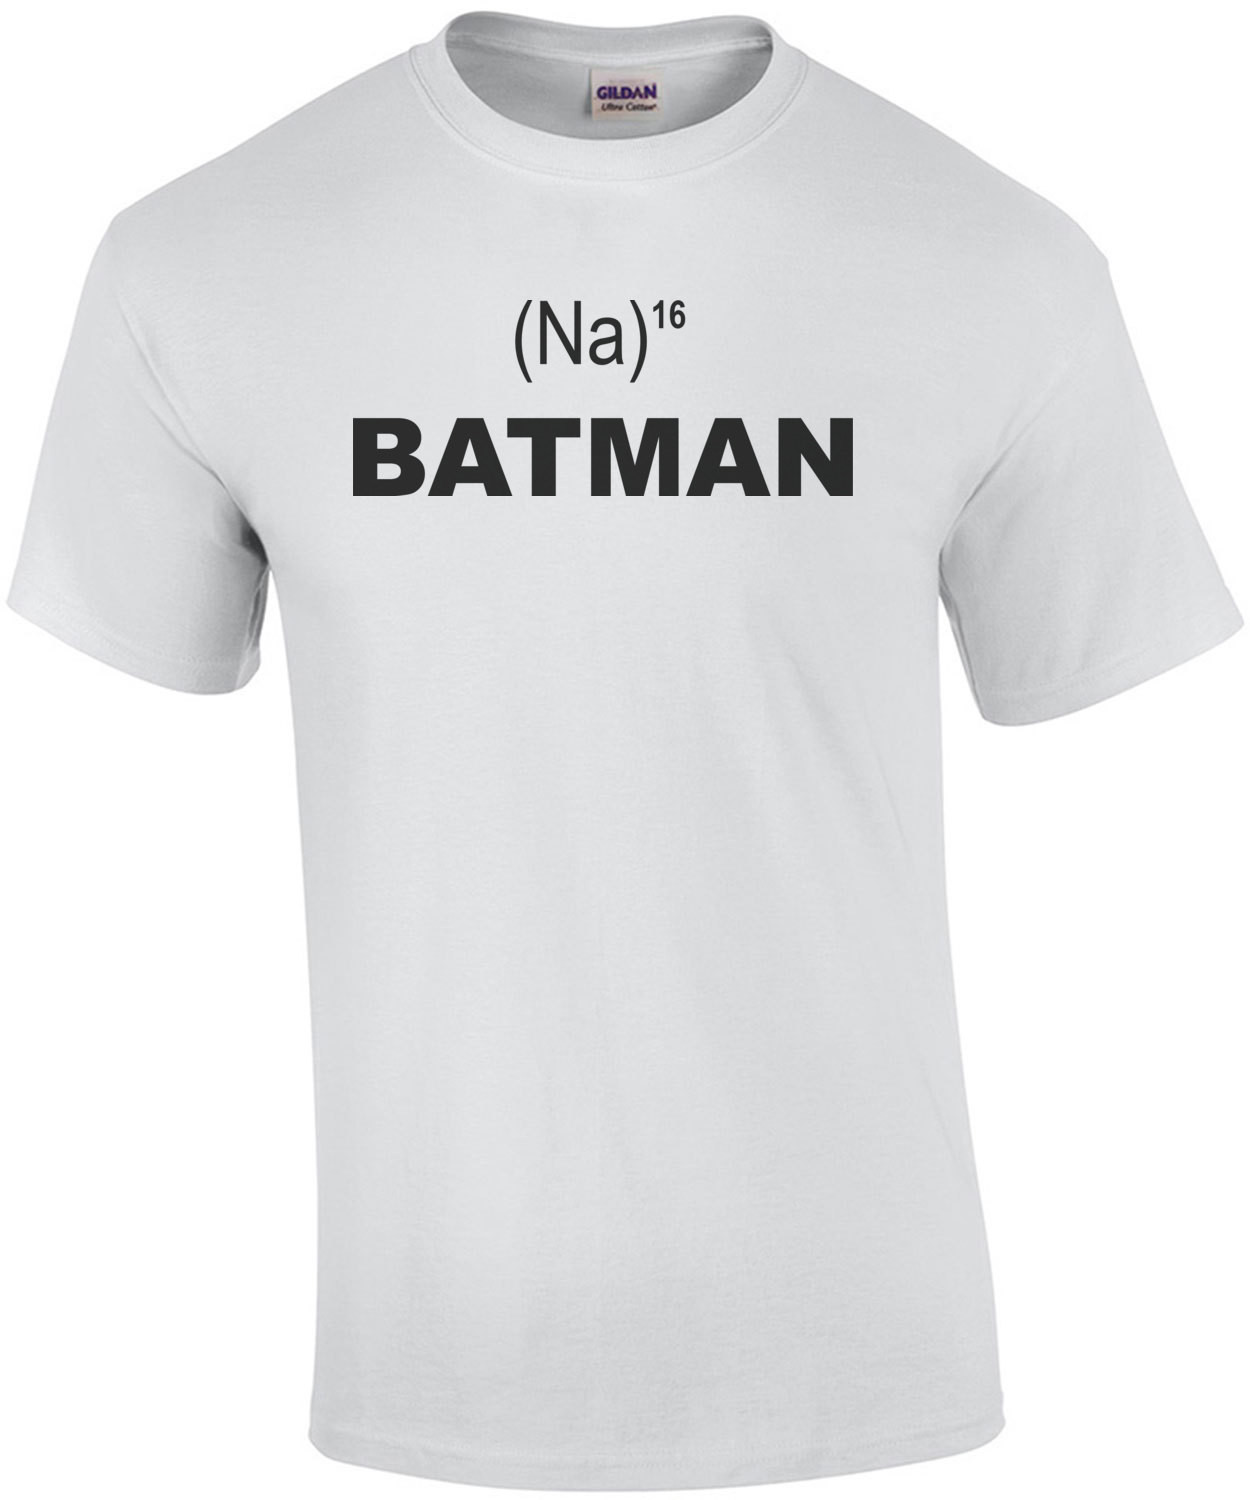 Na To The 16th Power Batman